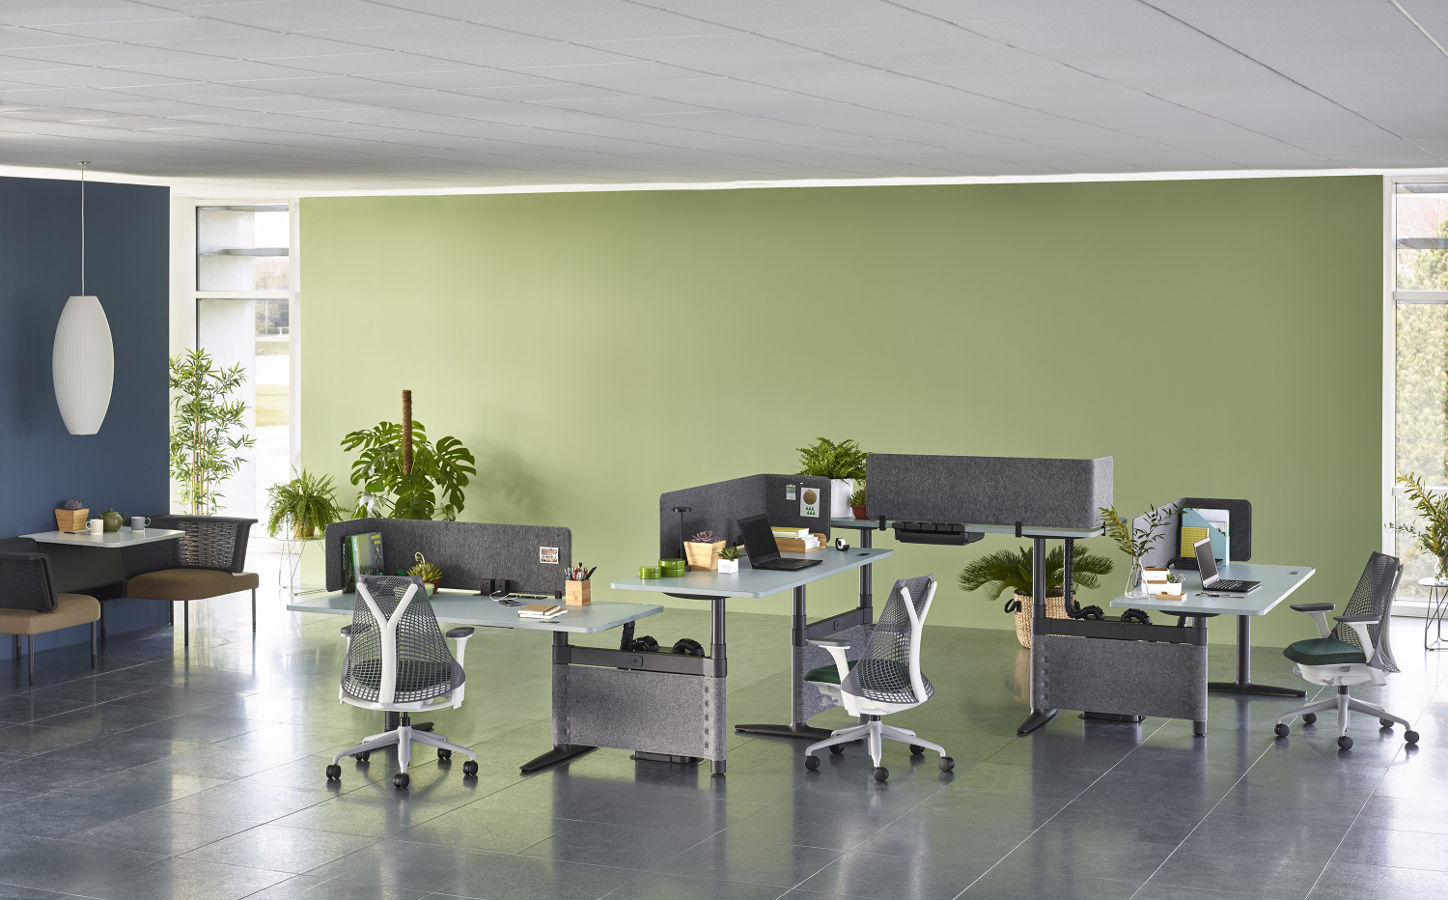 Atlas-Office-Landscape-Workstation-Desk-Office-Furniture-Herman-Miller-Fino-Malta